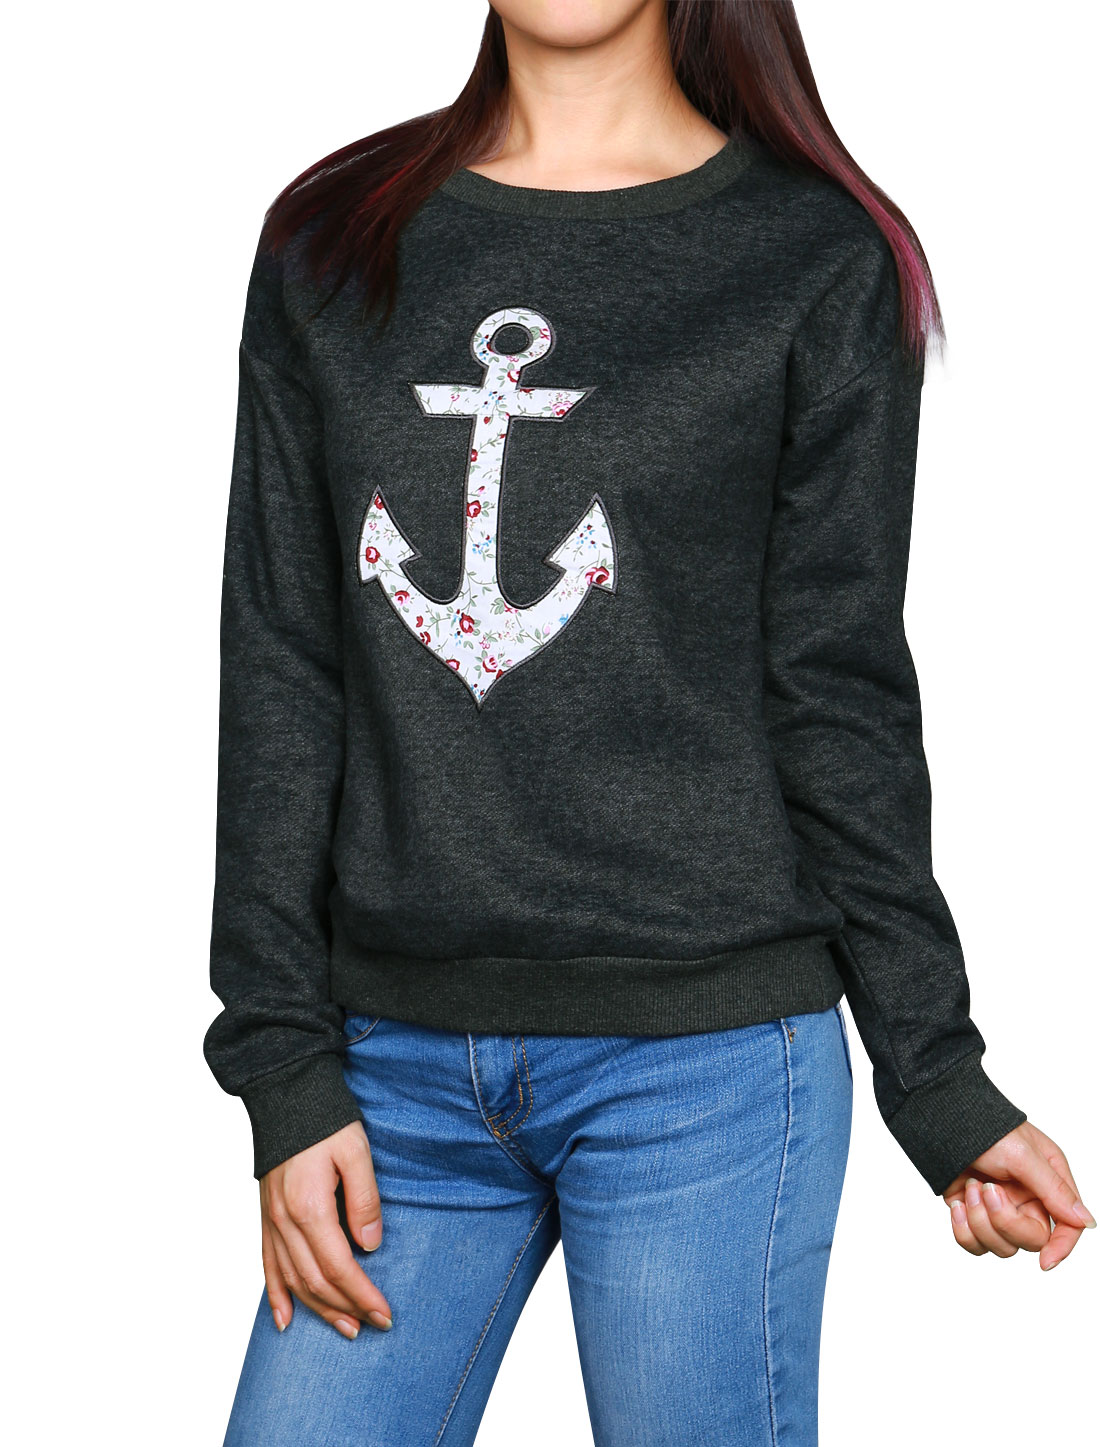 Woman Floral Anchor Applique Long Sleeves Soft Lined Sweatshirt Gray M